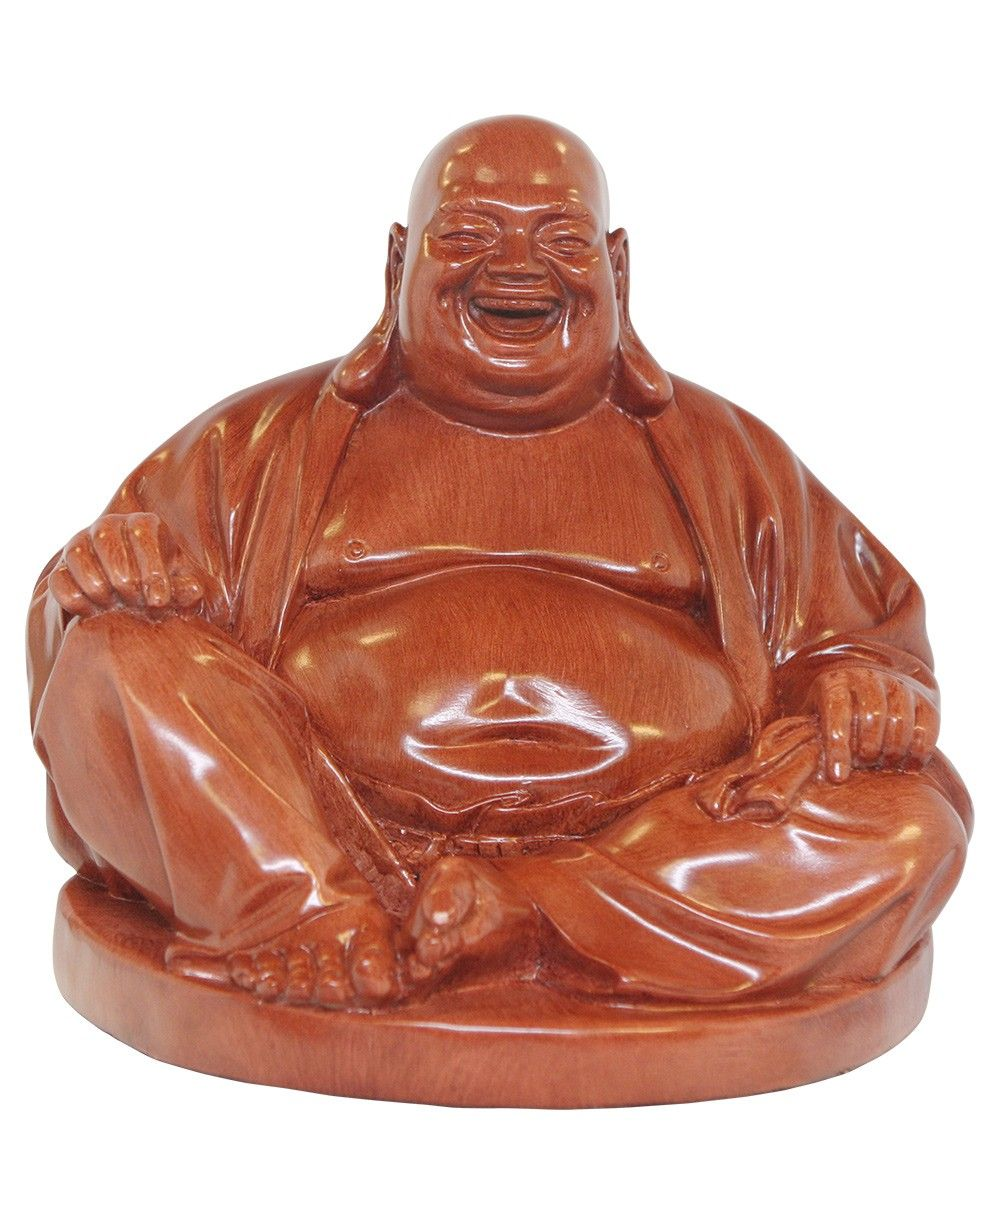 Happy buddha statue with wood finish made in vietnam available at happy buddha likeness is symbolic of joy mirth and contentment and it is said that rubbing the head or belly of a happy buddha statue brings good luck and biocorpaavc Choice Image